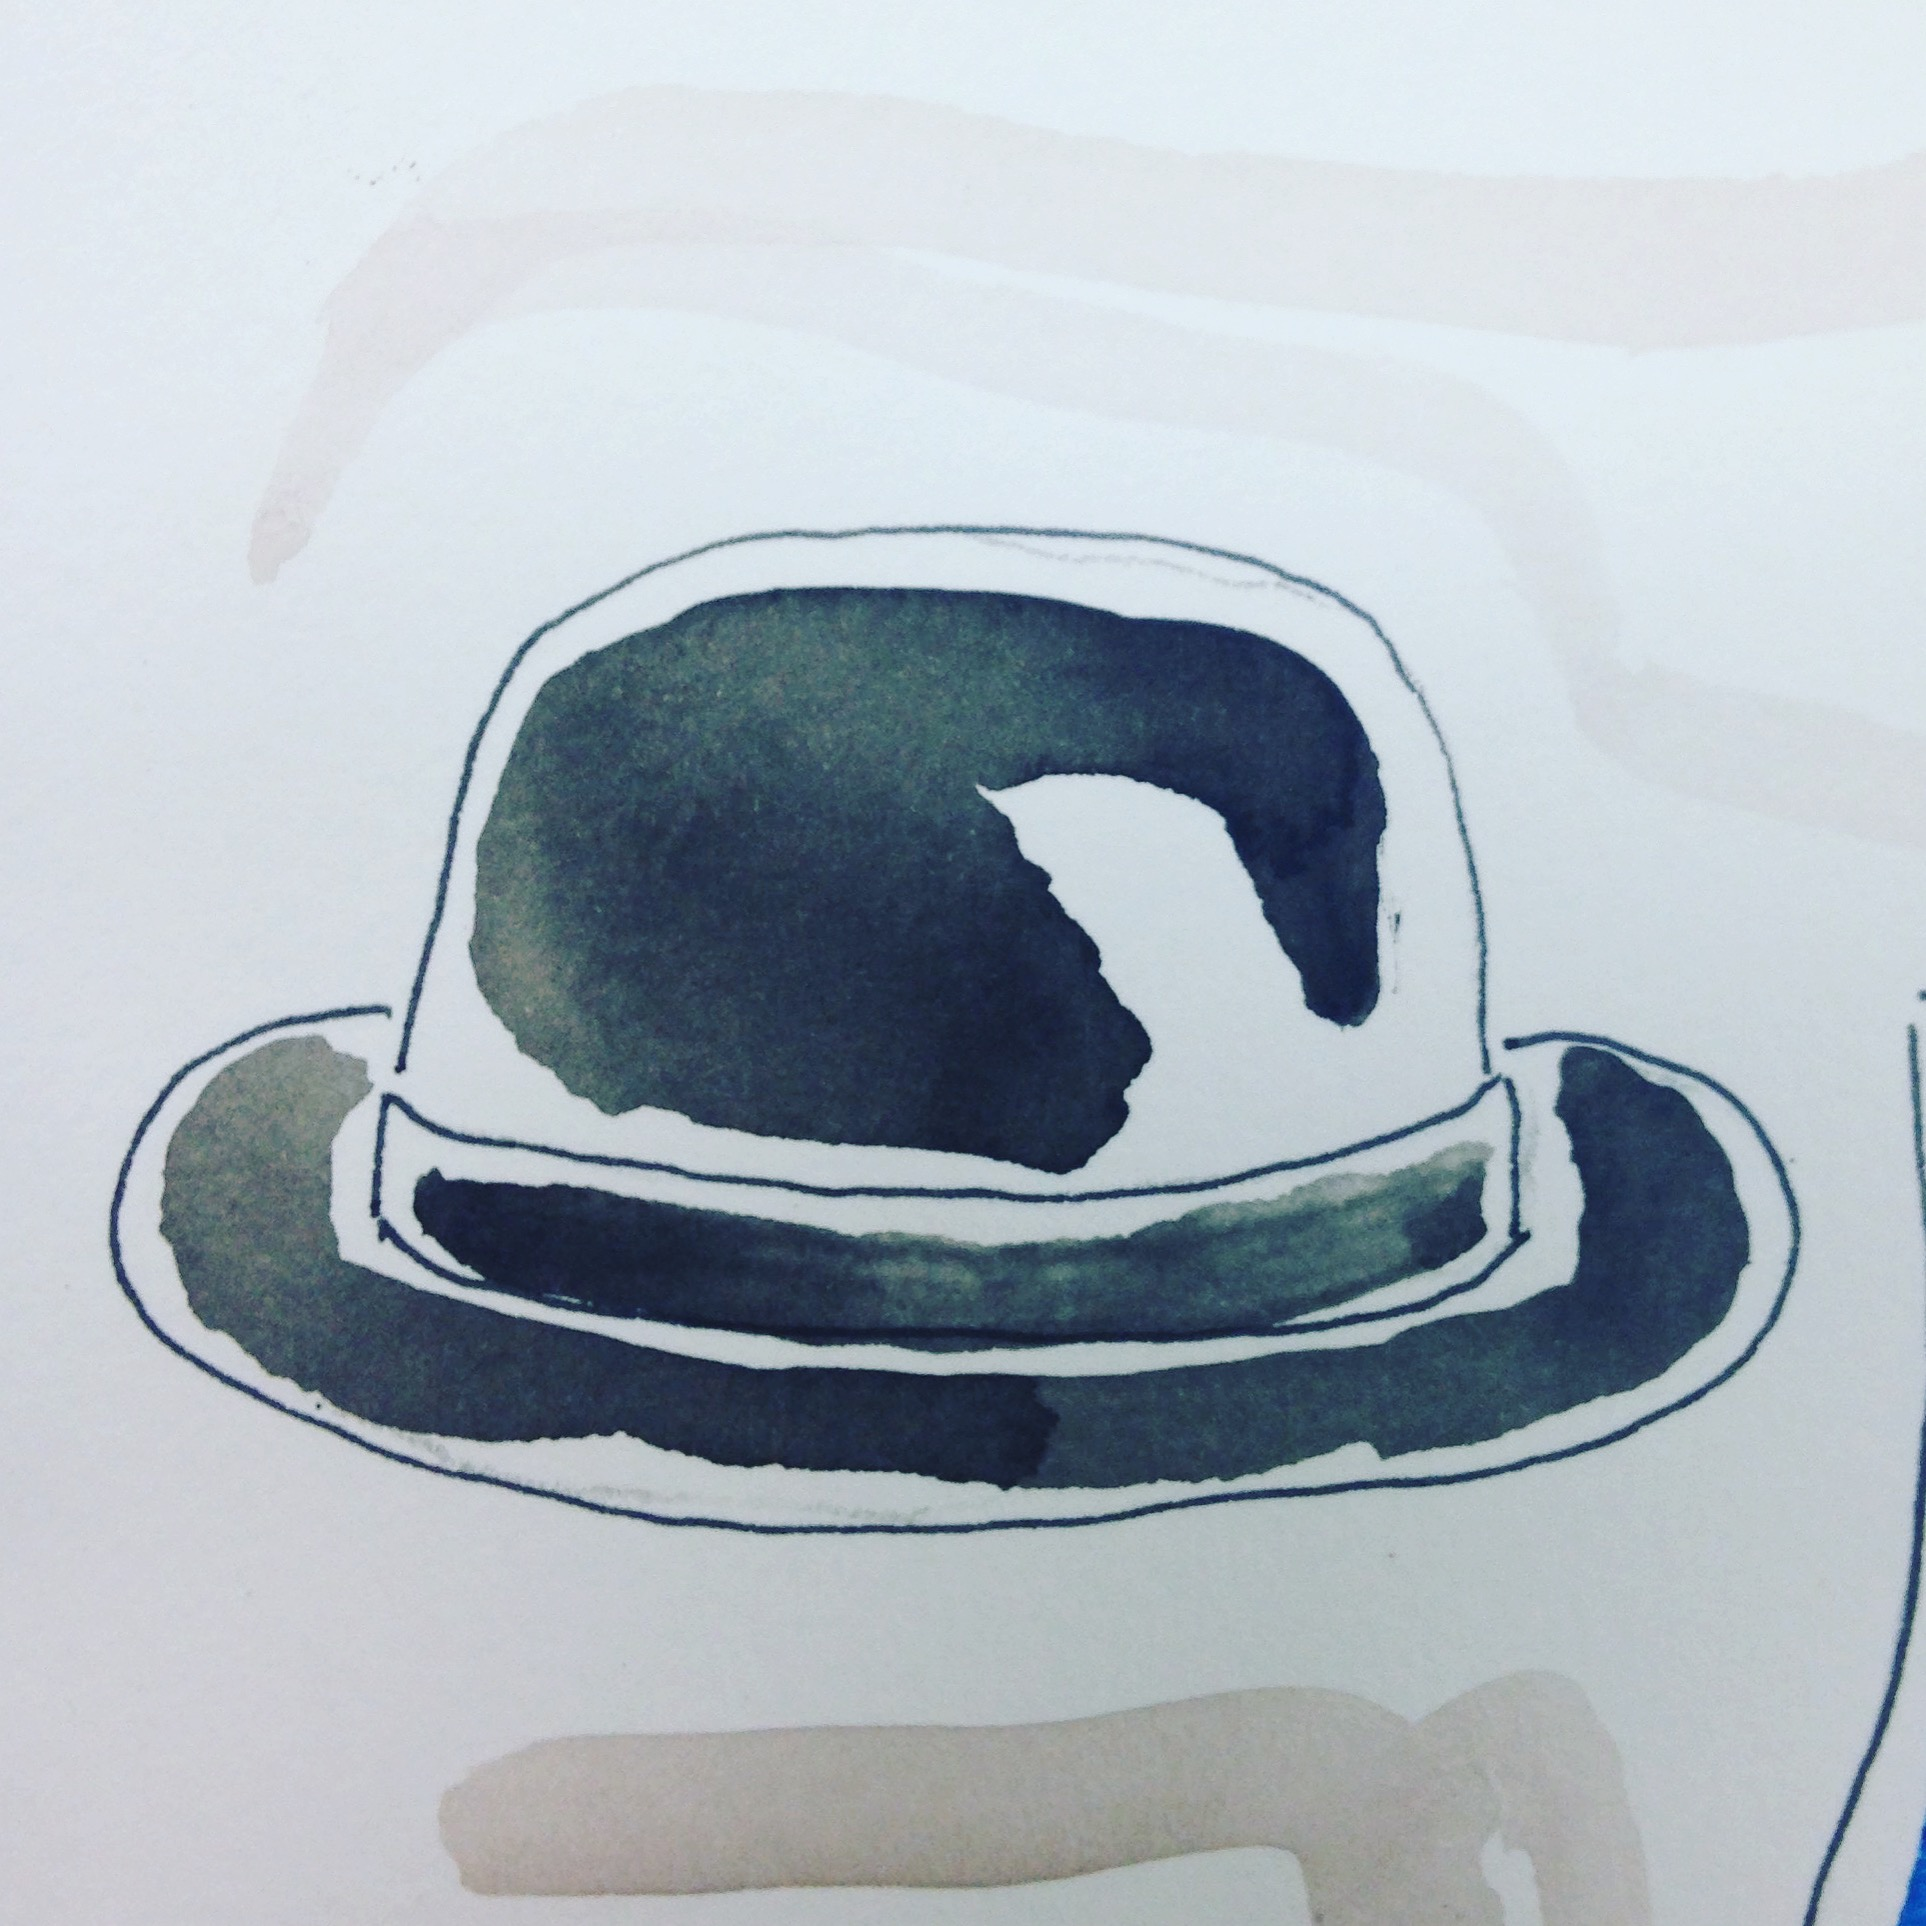 Anderson & Sheppard Felt Hat available here.